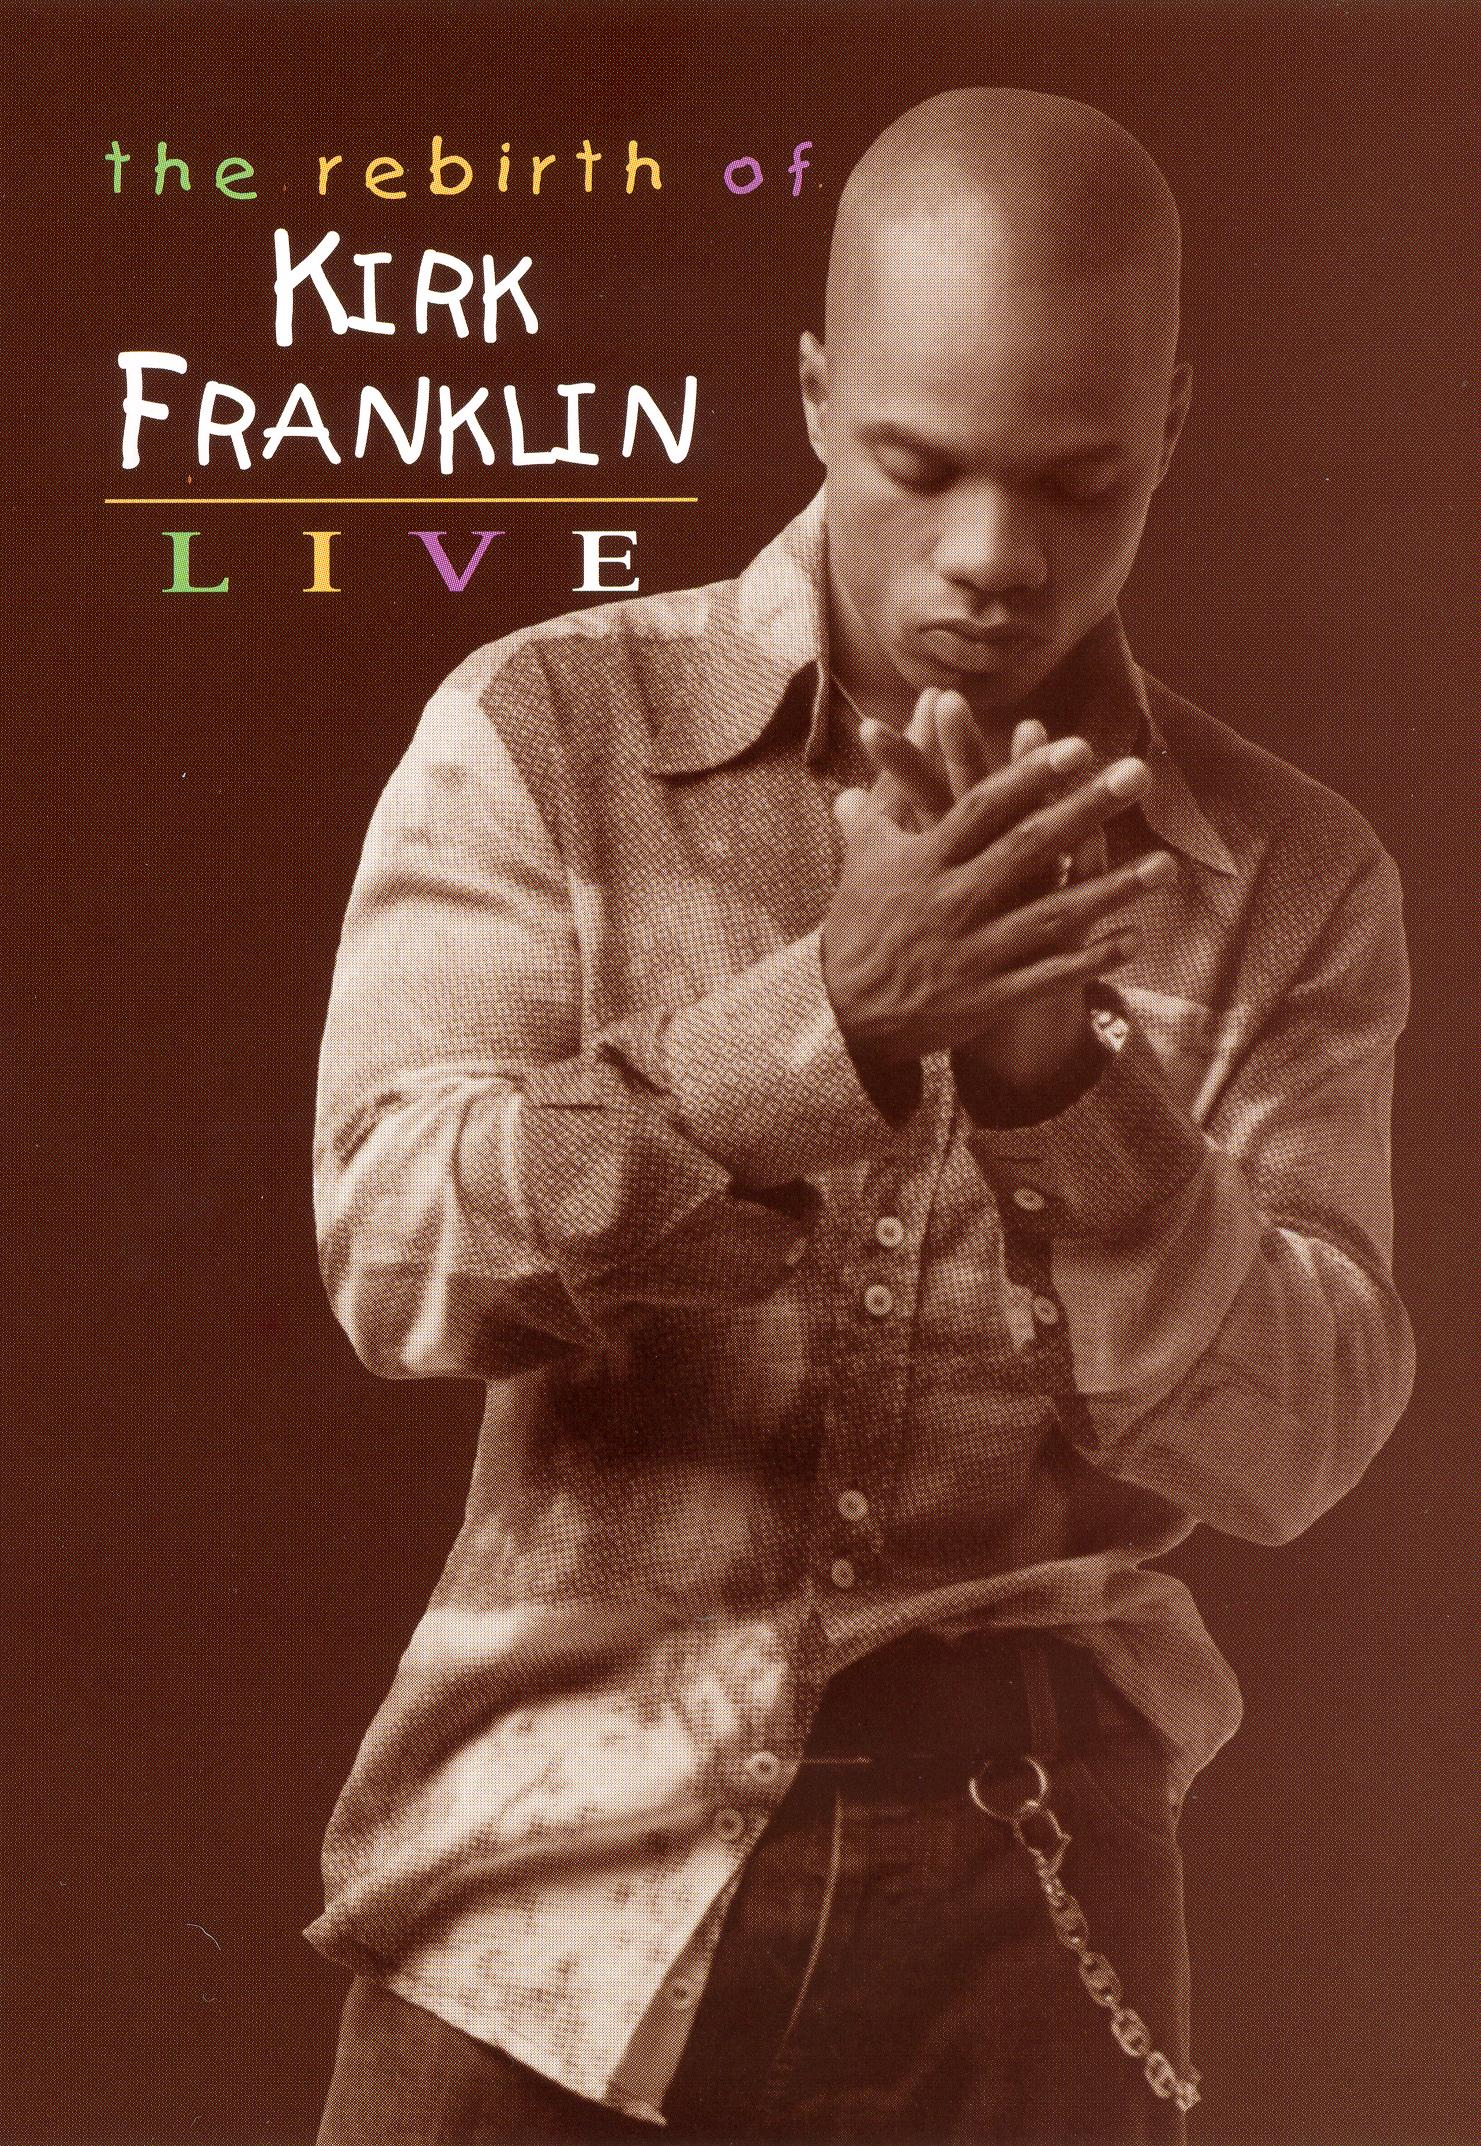 Kirk Franklin: The Rebirth of Kirk Franklin